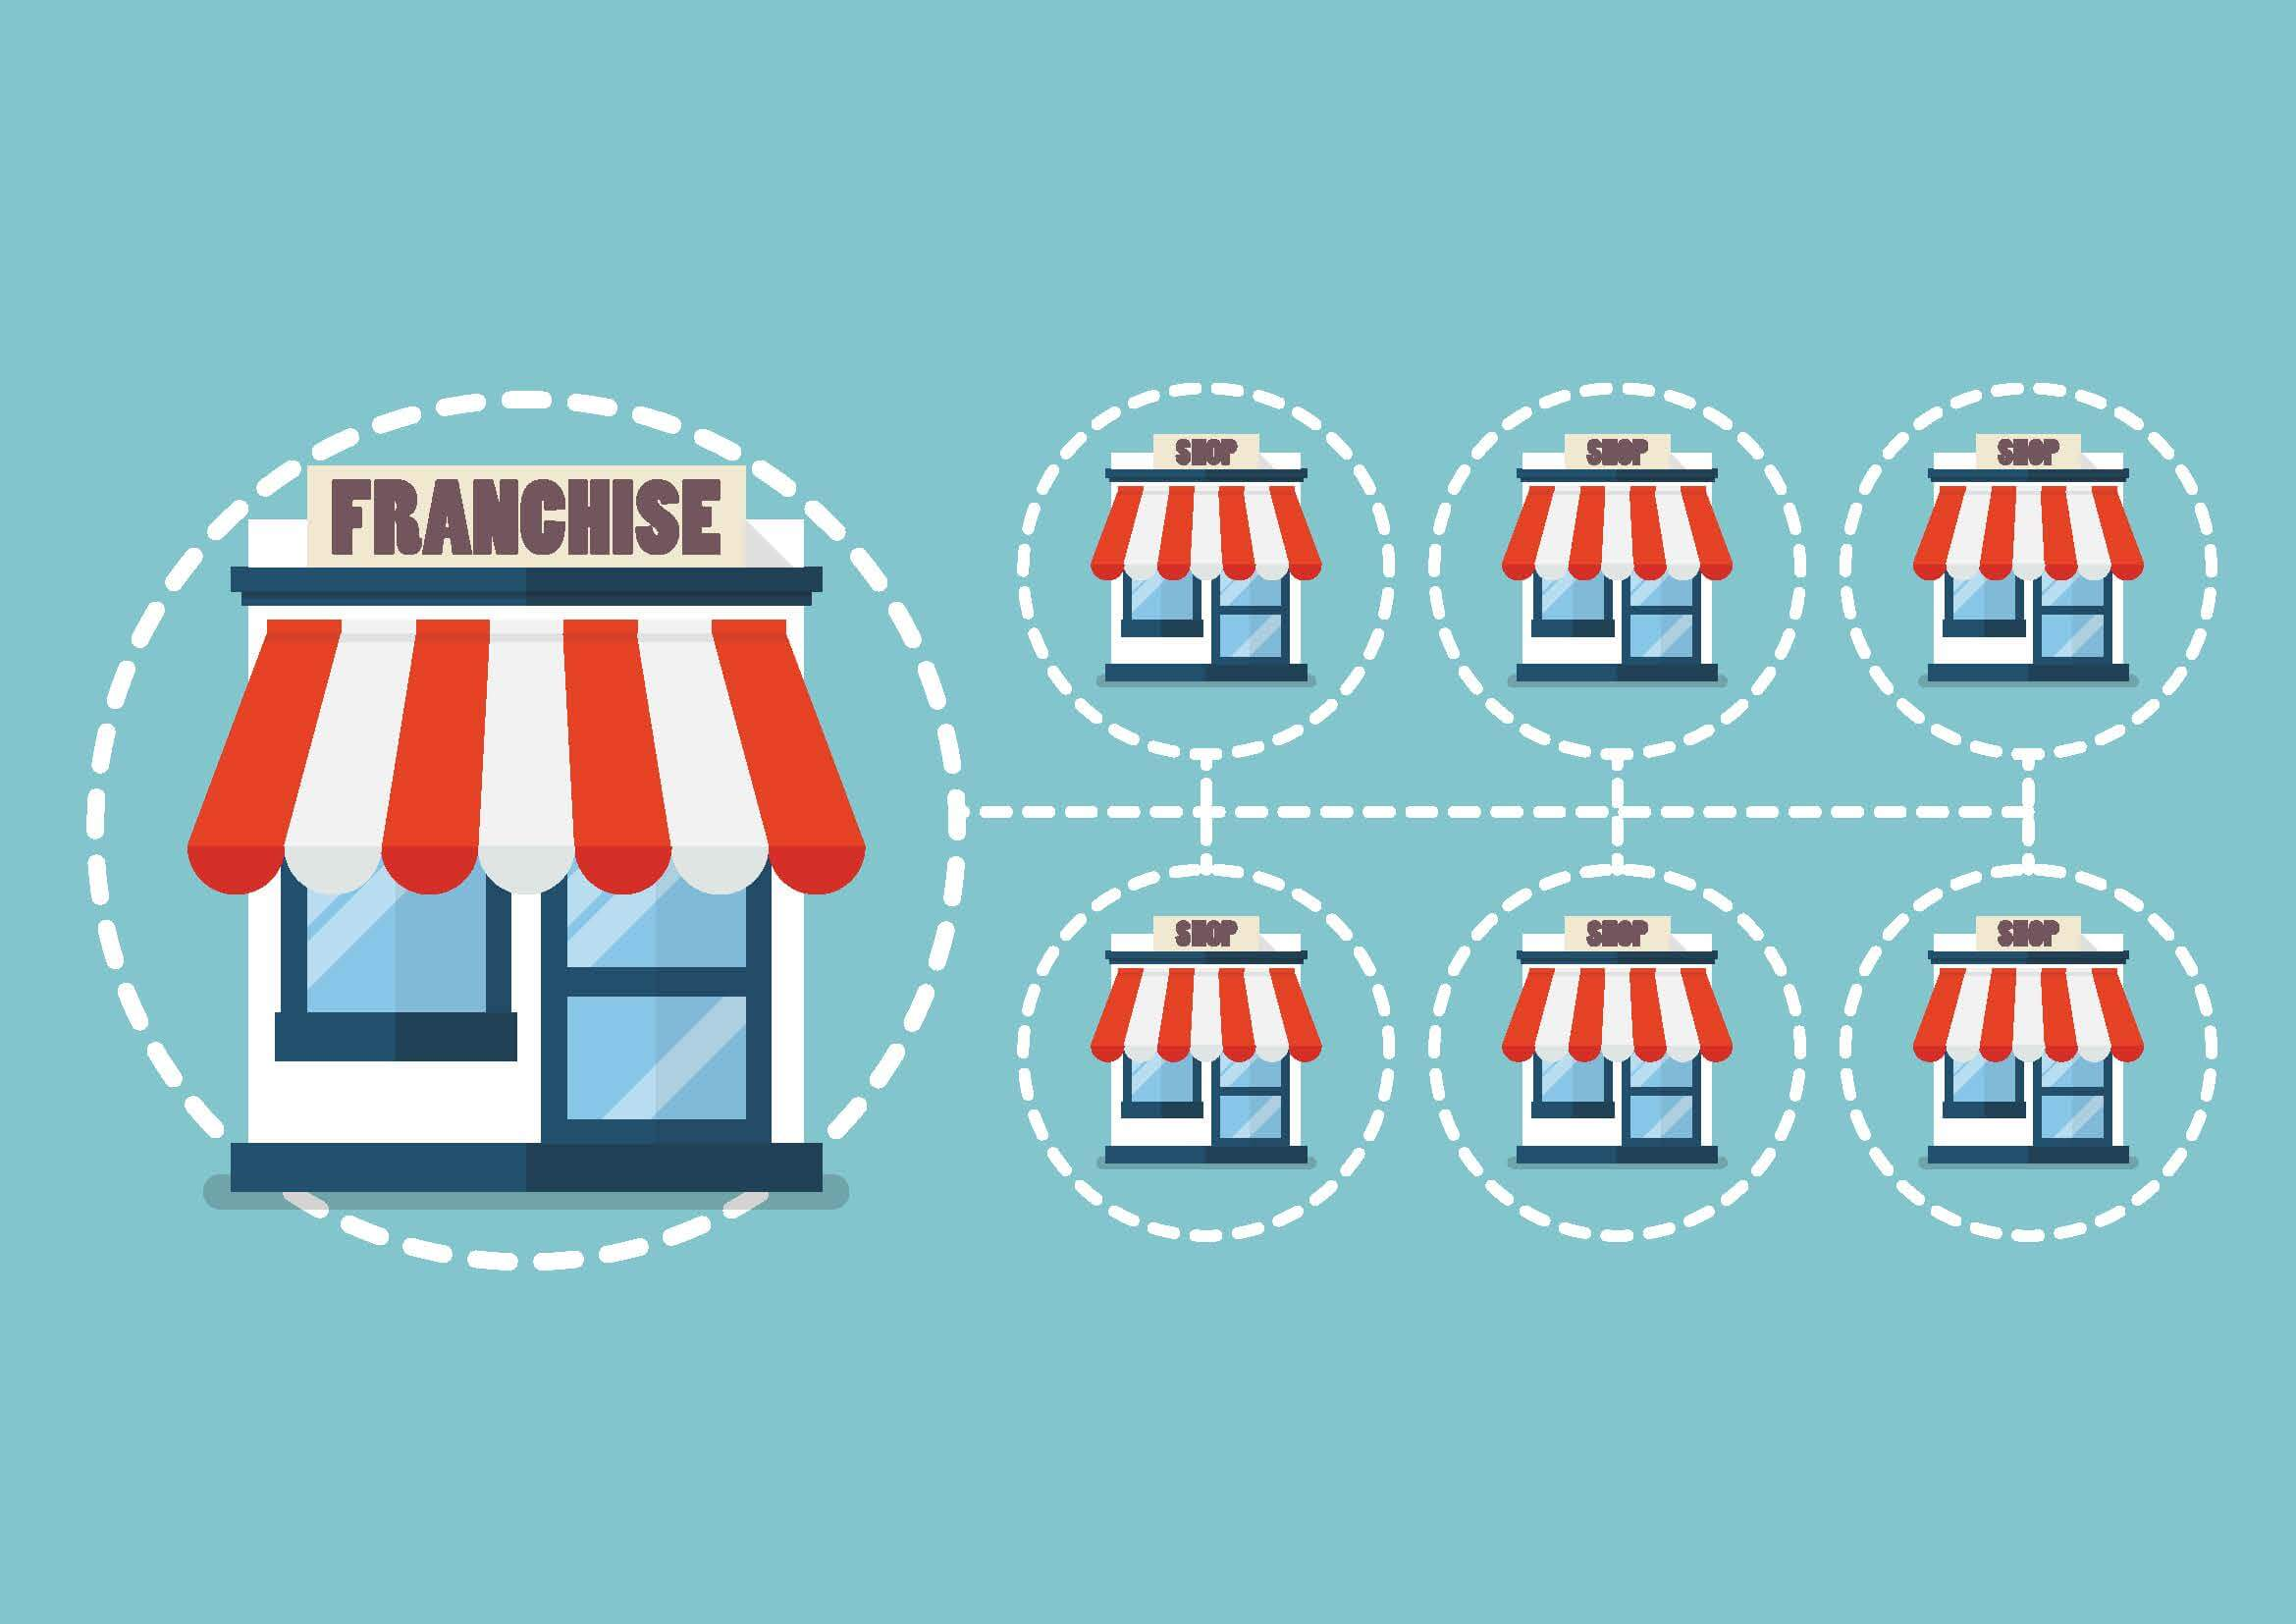 Food Franchise Business Plan